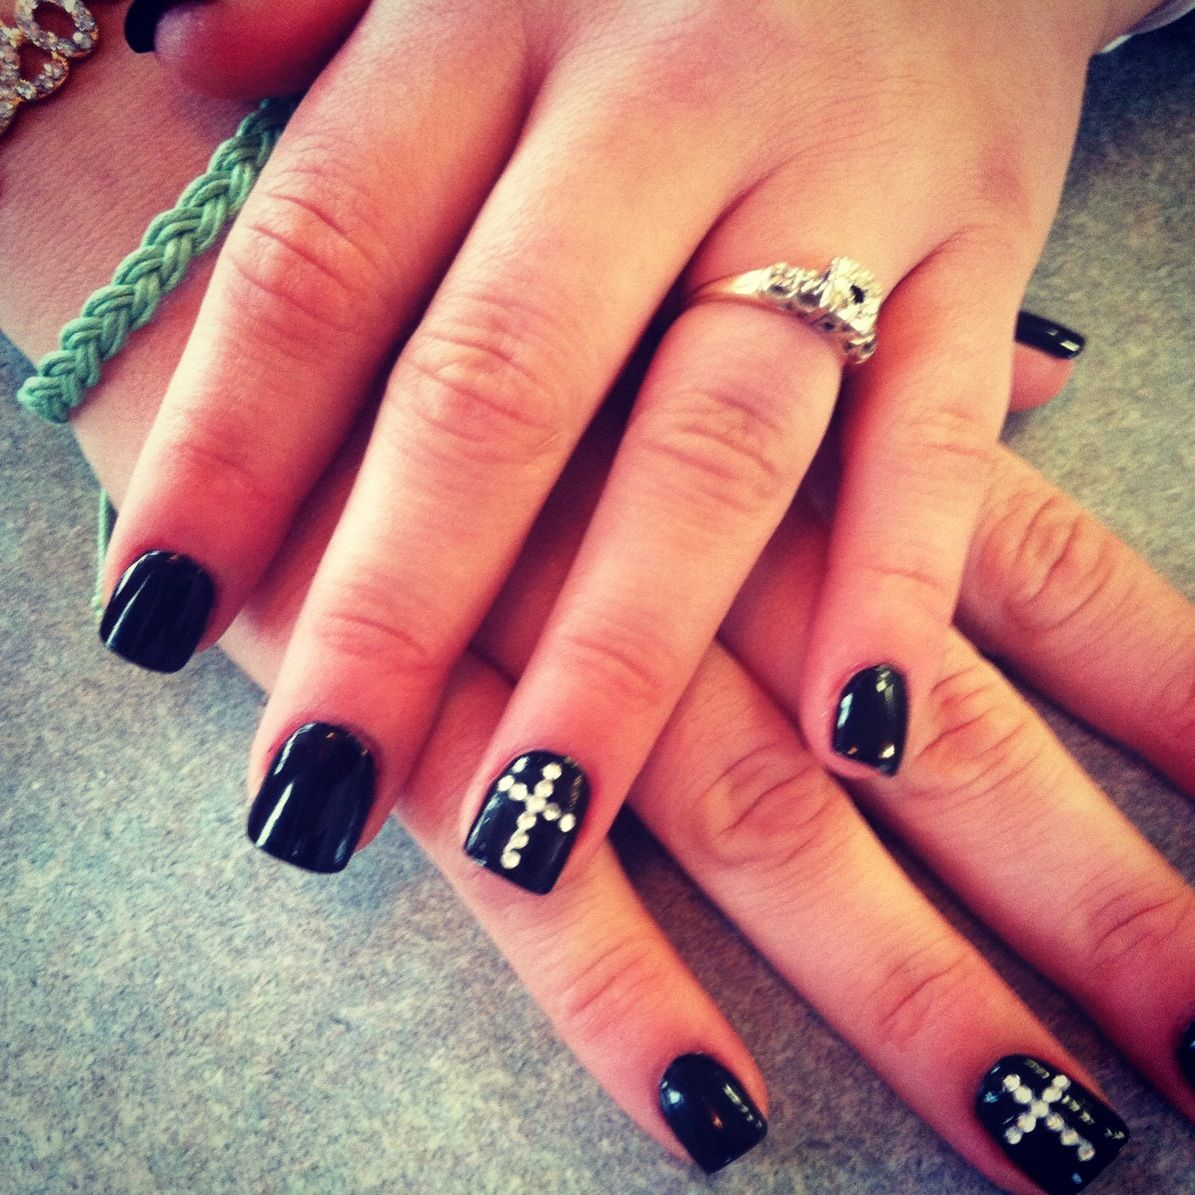 Nails - black with silver cross   N A I L S   Pinterest   Black ...